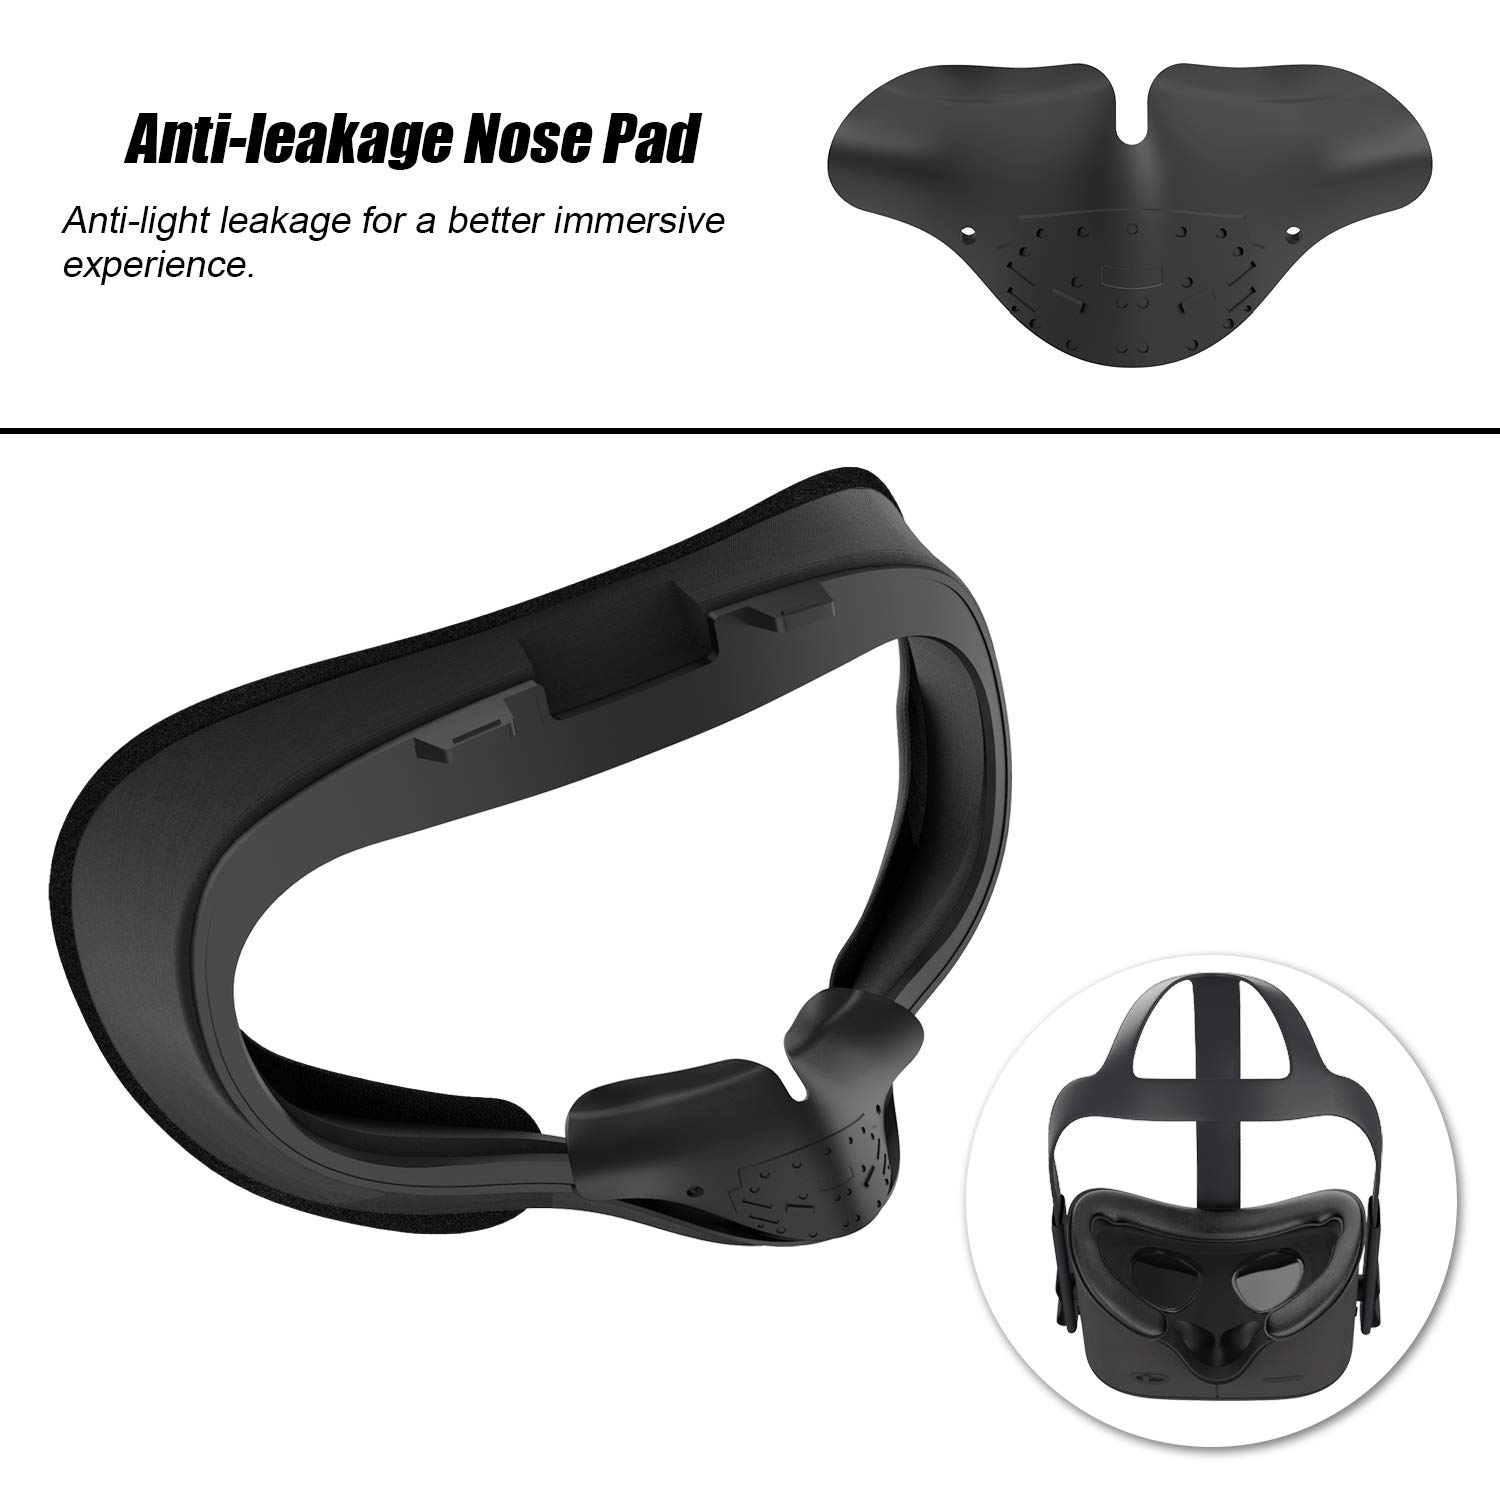 KT-CASE Silicone Cover Mask /& Face Pad for Oculus Quest Face Cushion 2 pairs Oculus Quest Film Lens Protector ,Oculus Quest Accessory Set Black